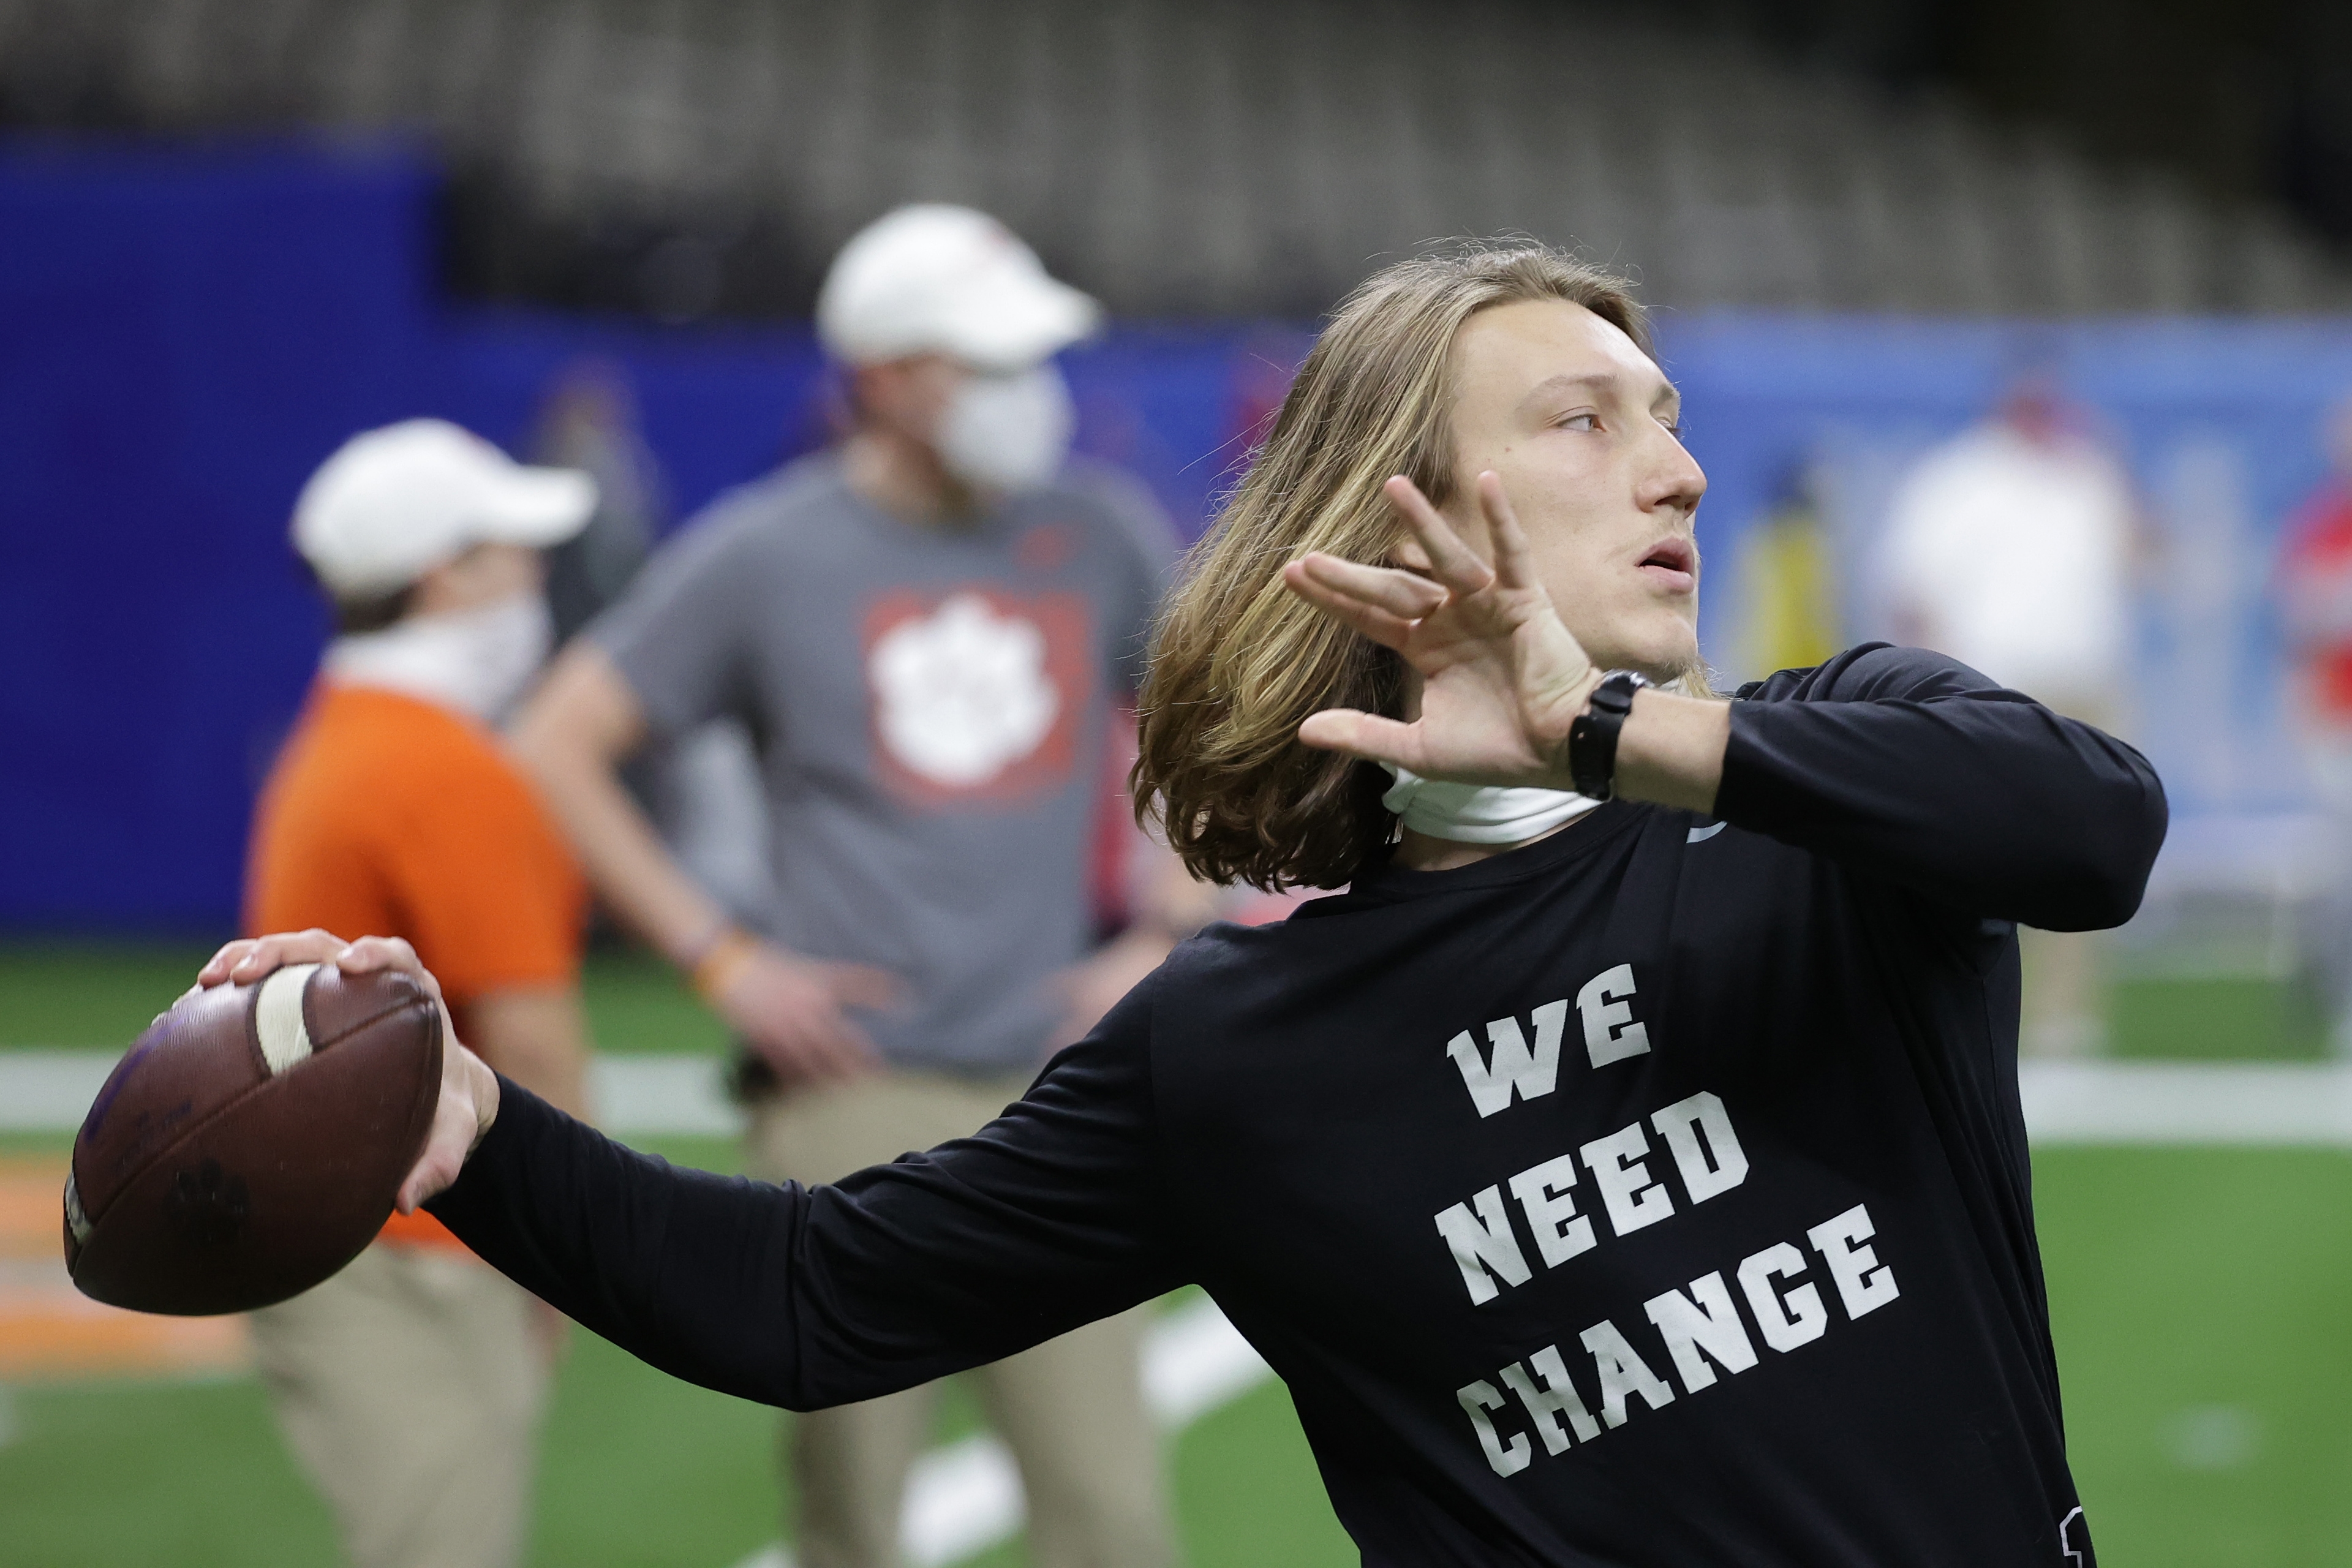 Jan 1, 2021; New Orleans, LA, USA; Clemson Tigers quarterback Trevor Lawrence (16) warms up prior to the game against the Ohio State Buckeyes at Mercedes-Benz Superdome. Mandatory Credit: Derick E. Hingle-USA TODAY Sports